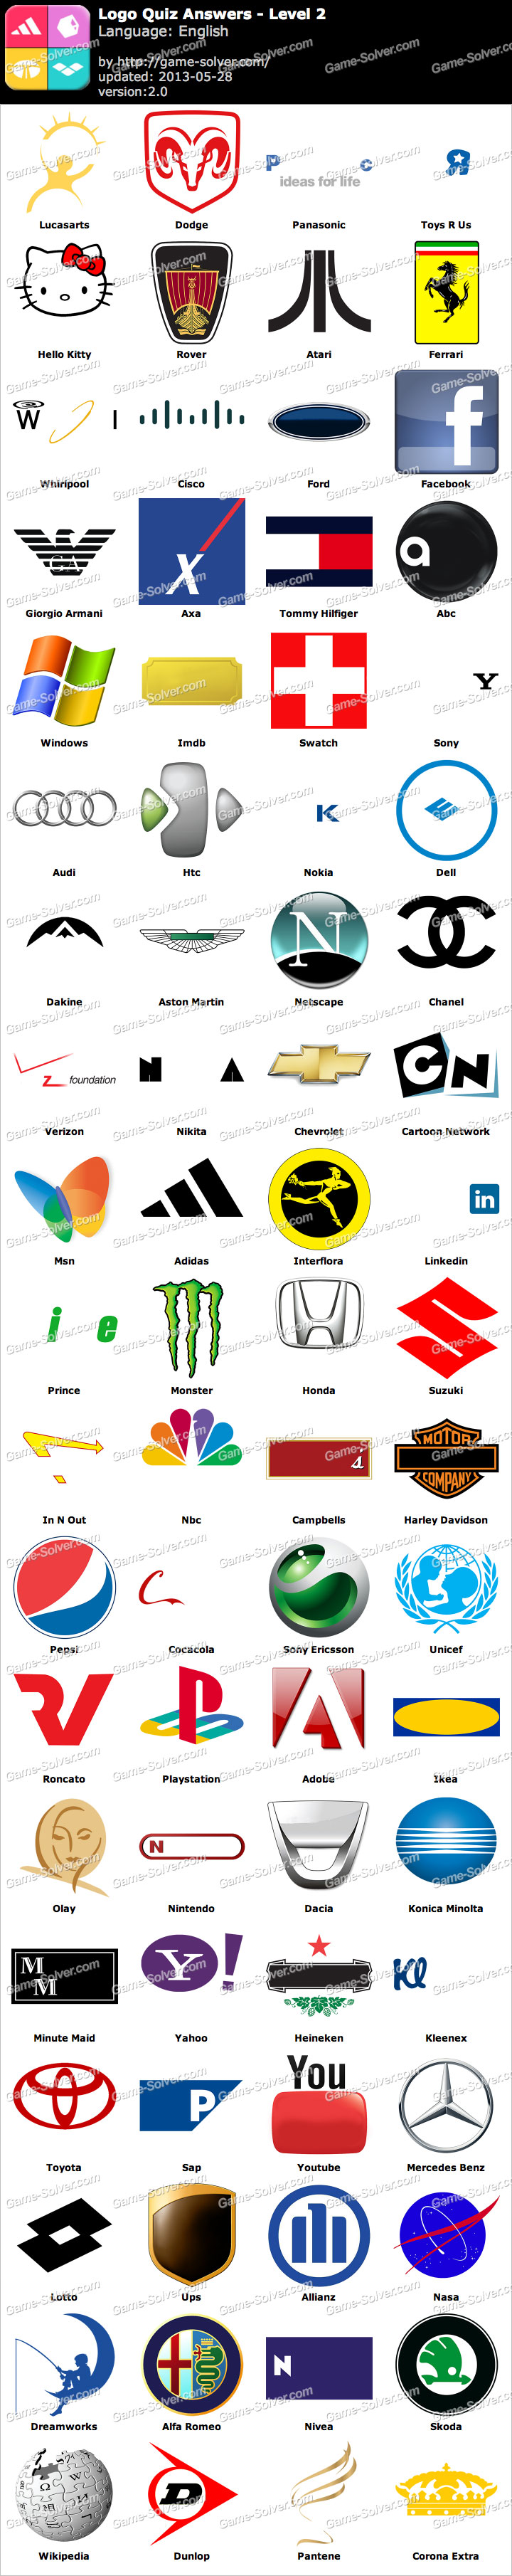 Logo Quiz Level 2 Word List